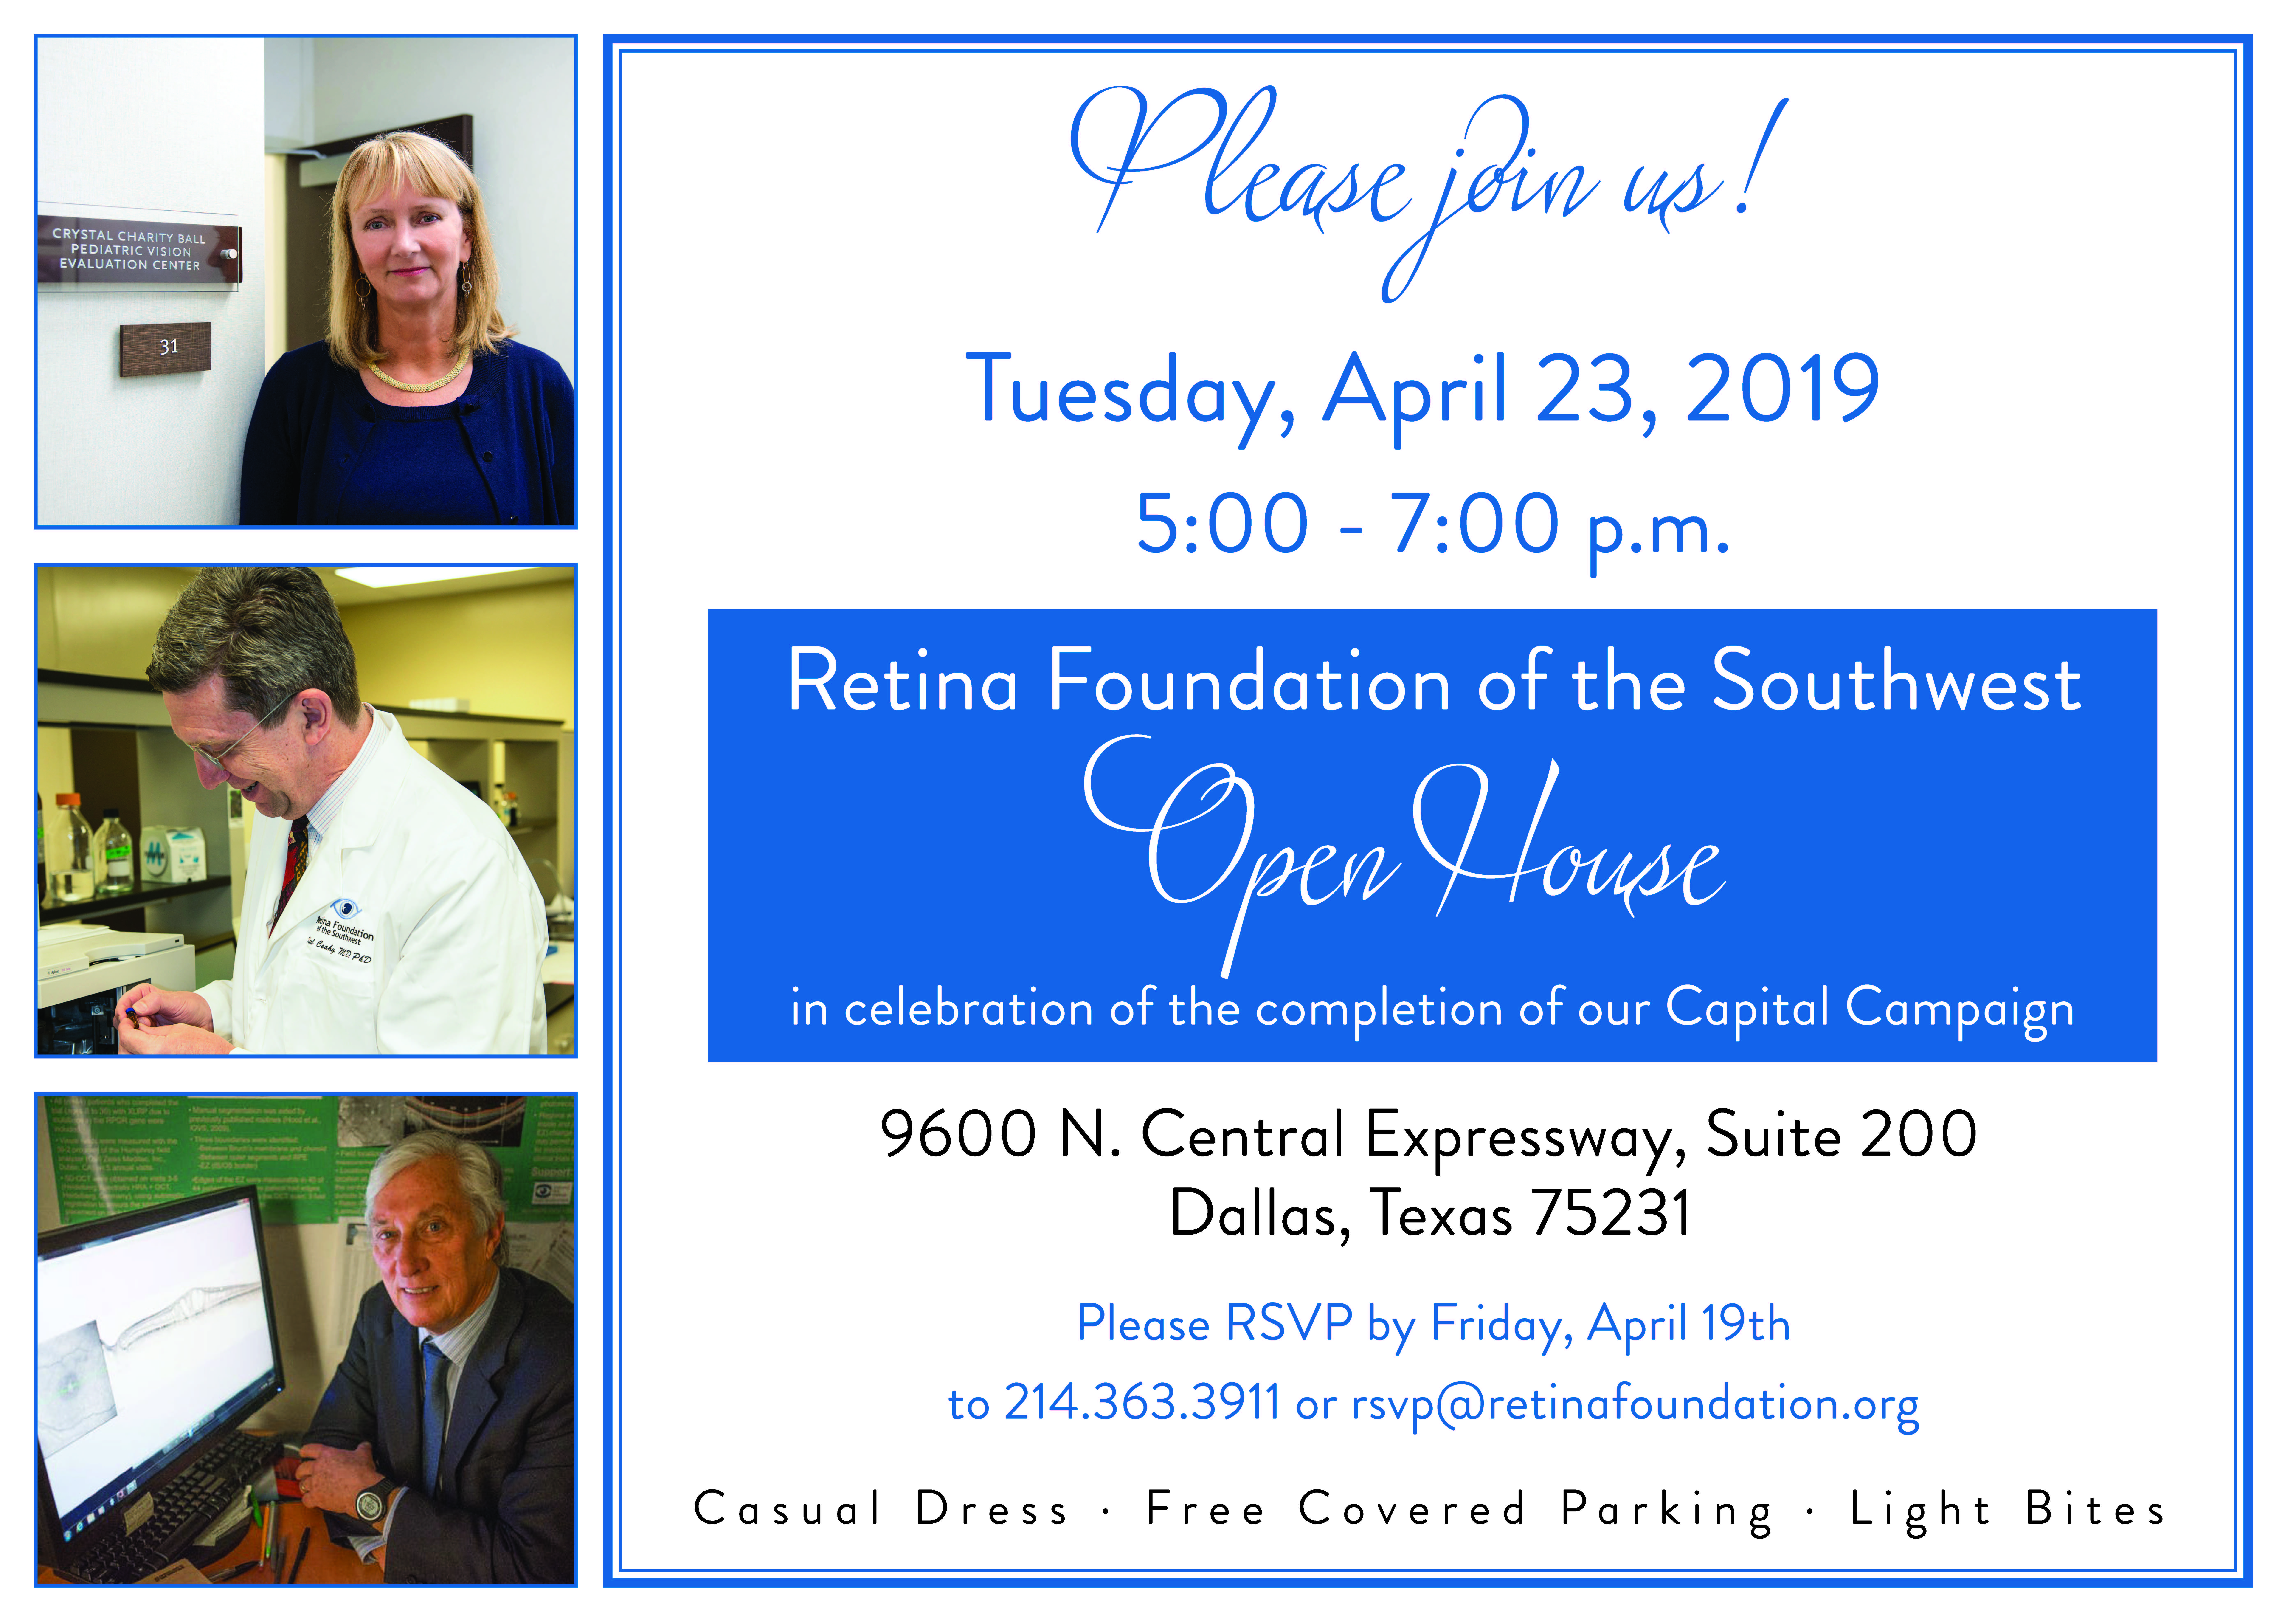 Retina Foundation Open House